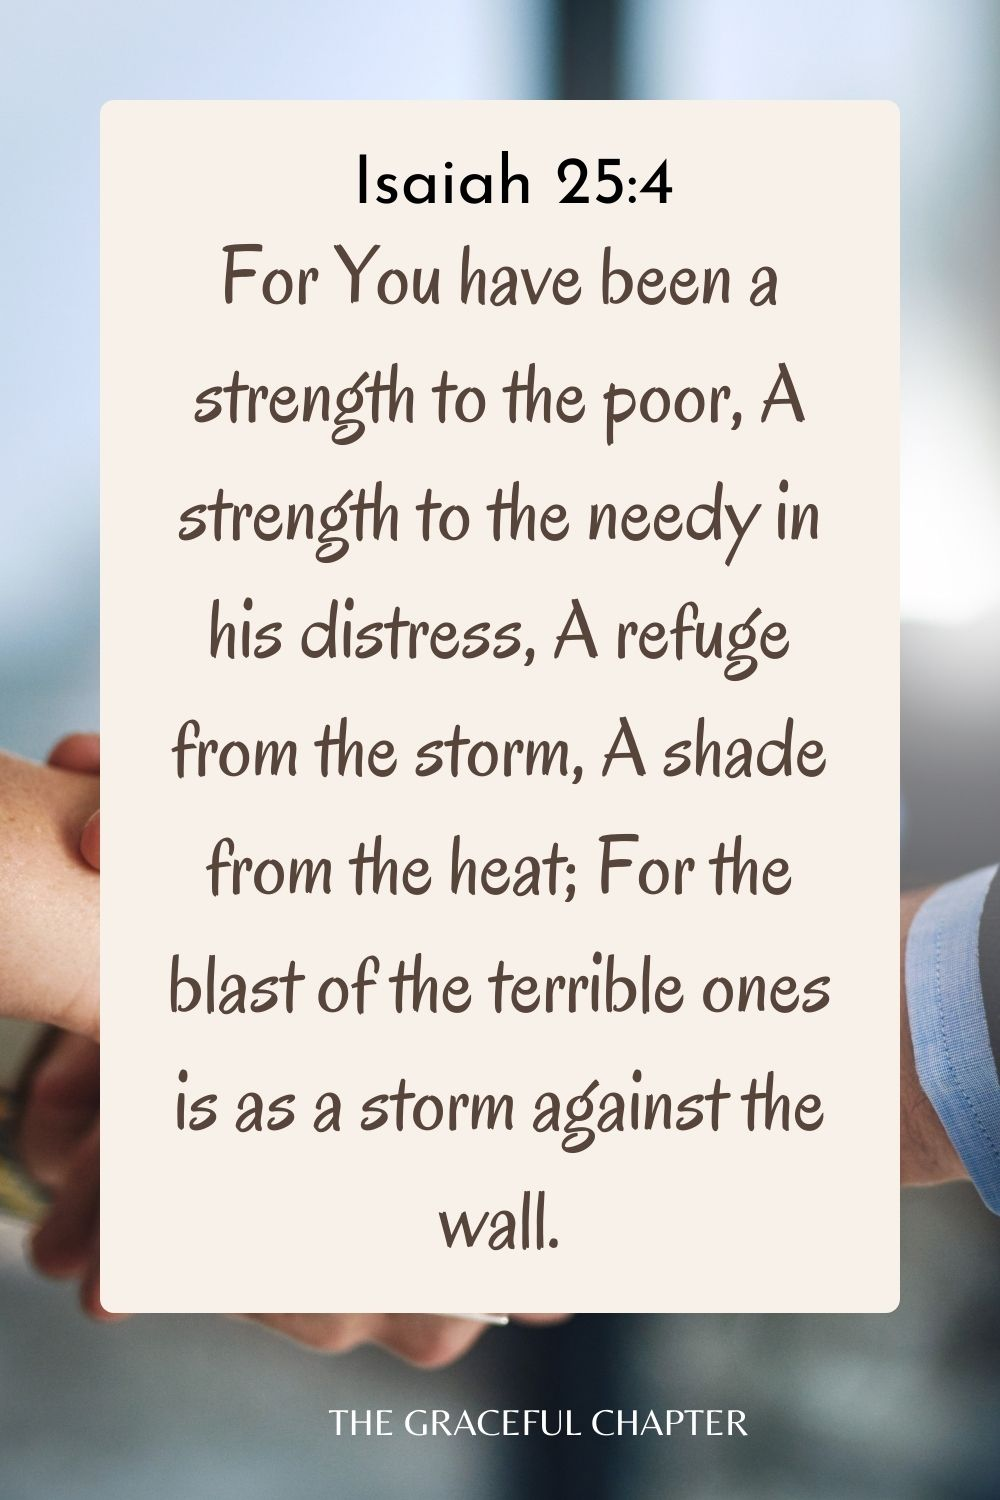 For You have been a strength to the poor, A strength to the needy in his distress, A refuge from the storm, A shade from the heat; For the blast of the terrible ones is as a storm against the wall. Isaiah 25:4